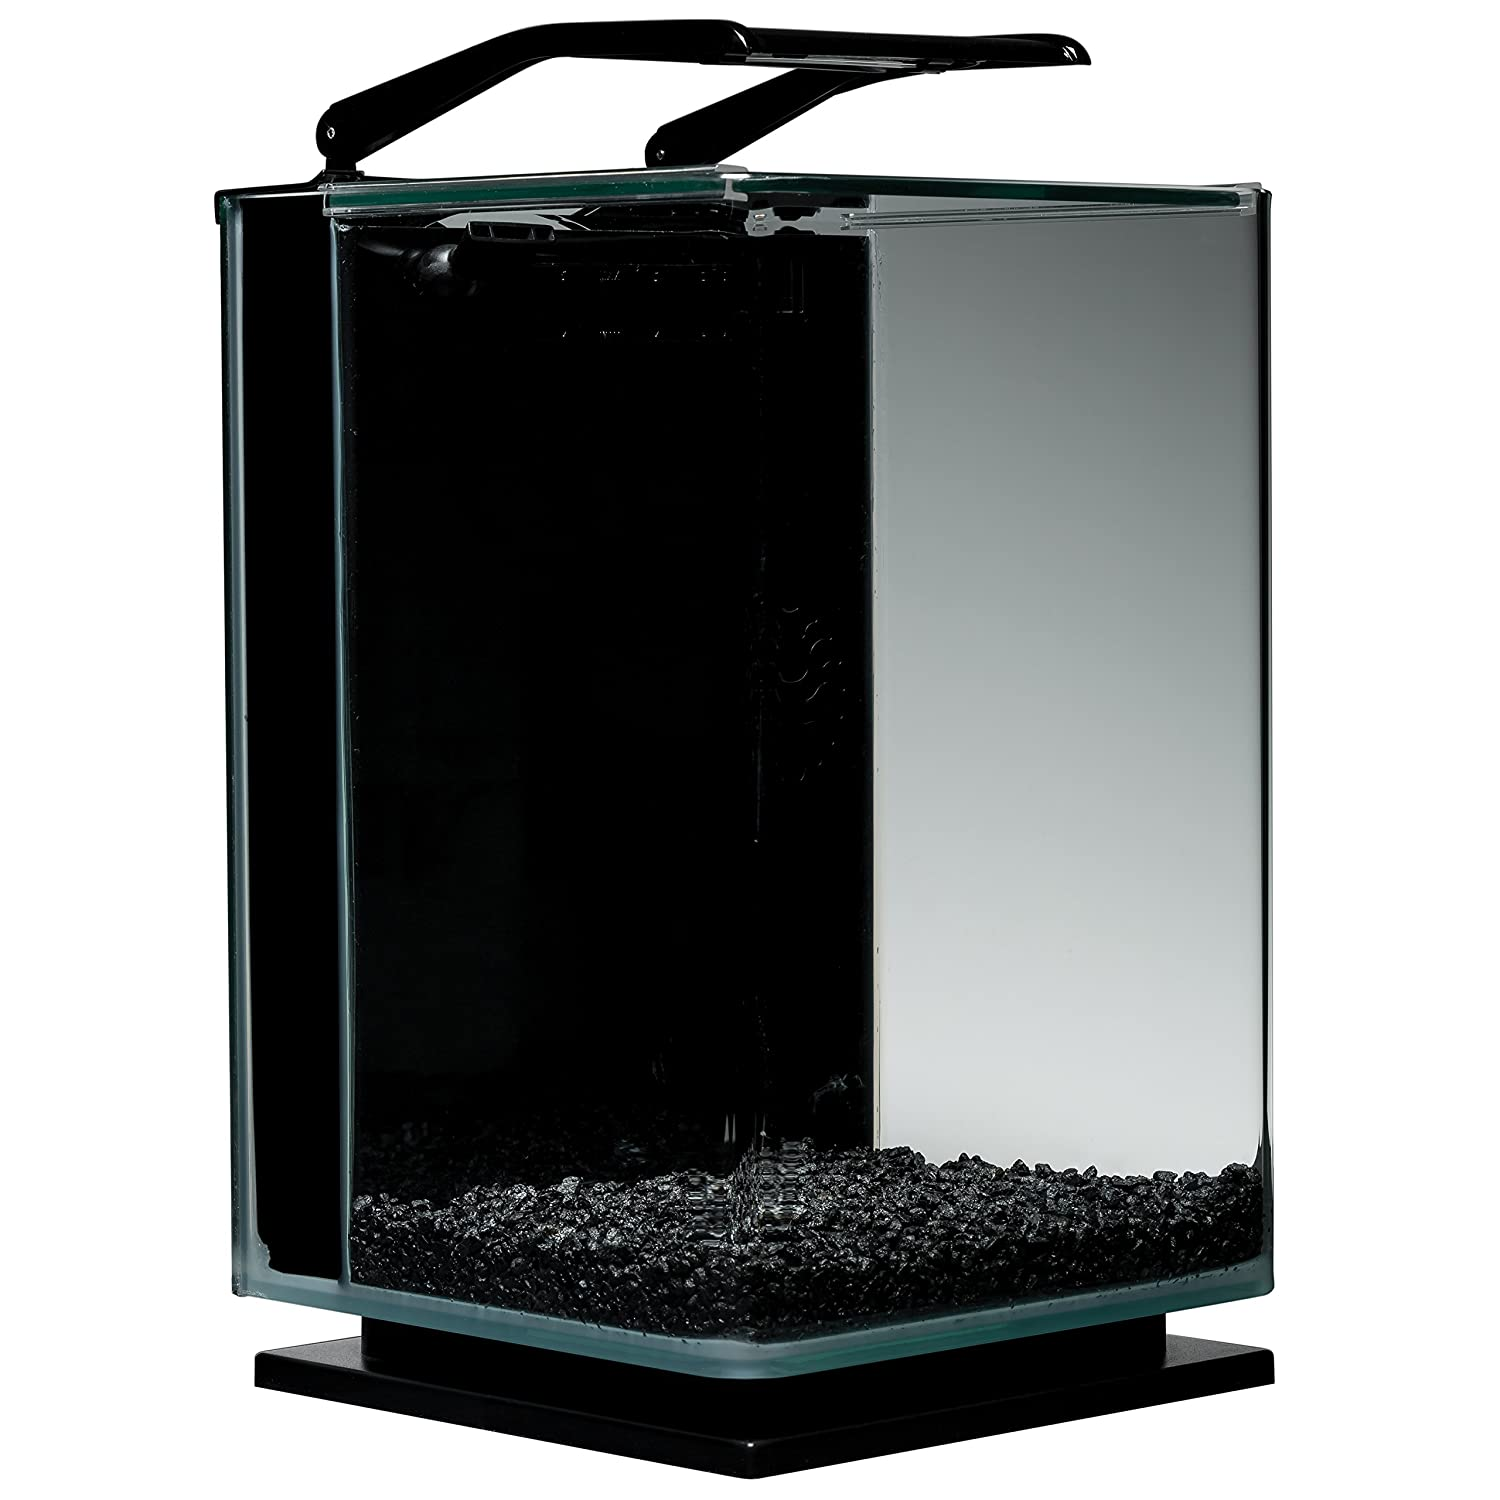 5 gallon fish tank 0 3 sunsun hkl 250 mini glass for 5 gallon glass fish tank